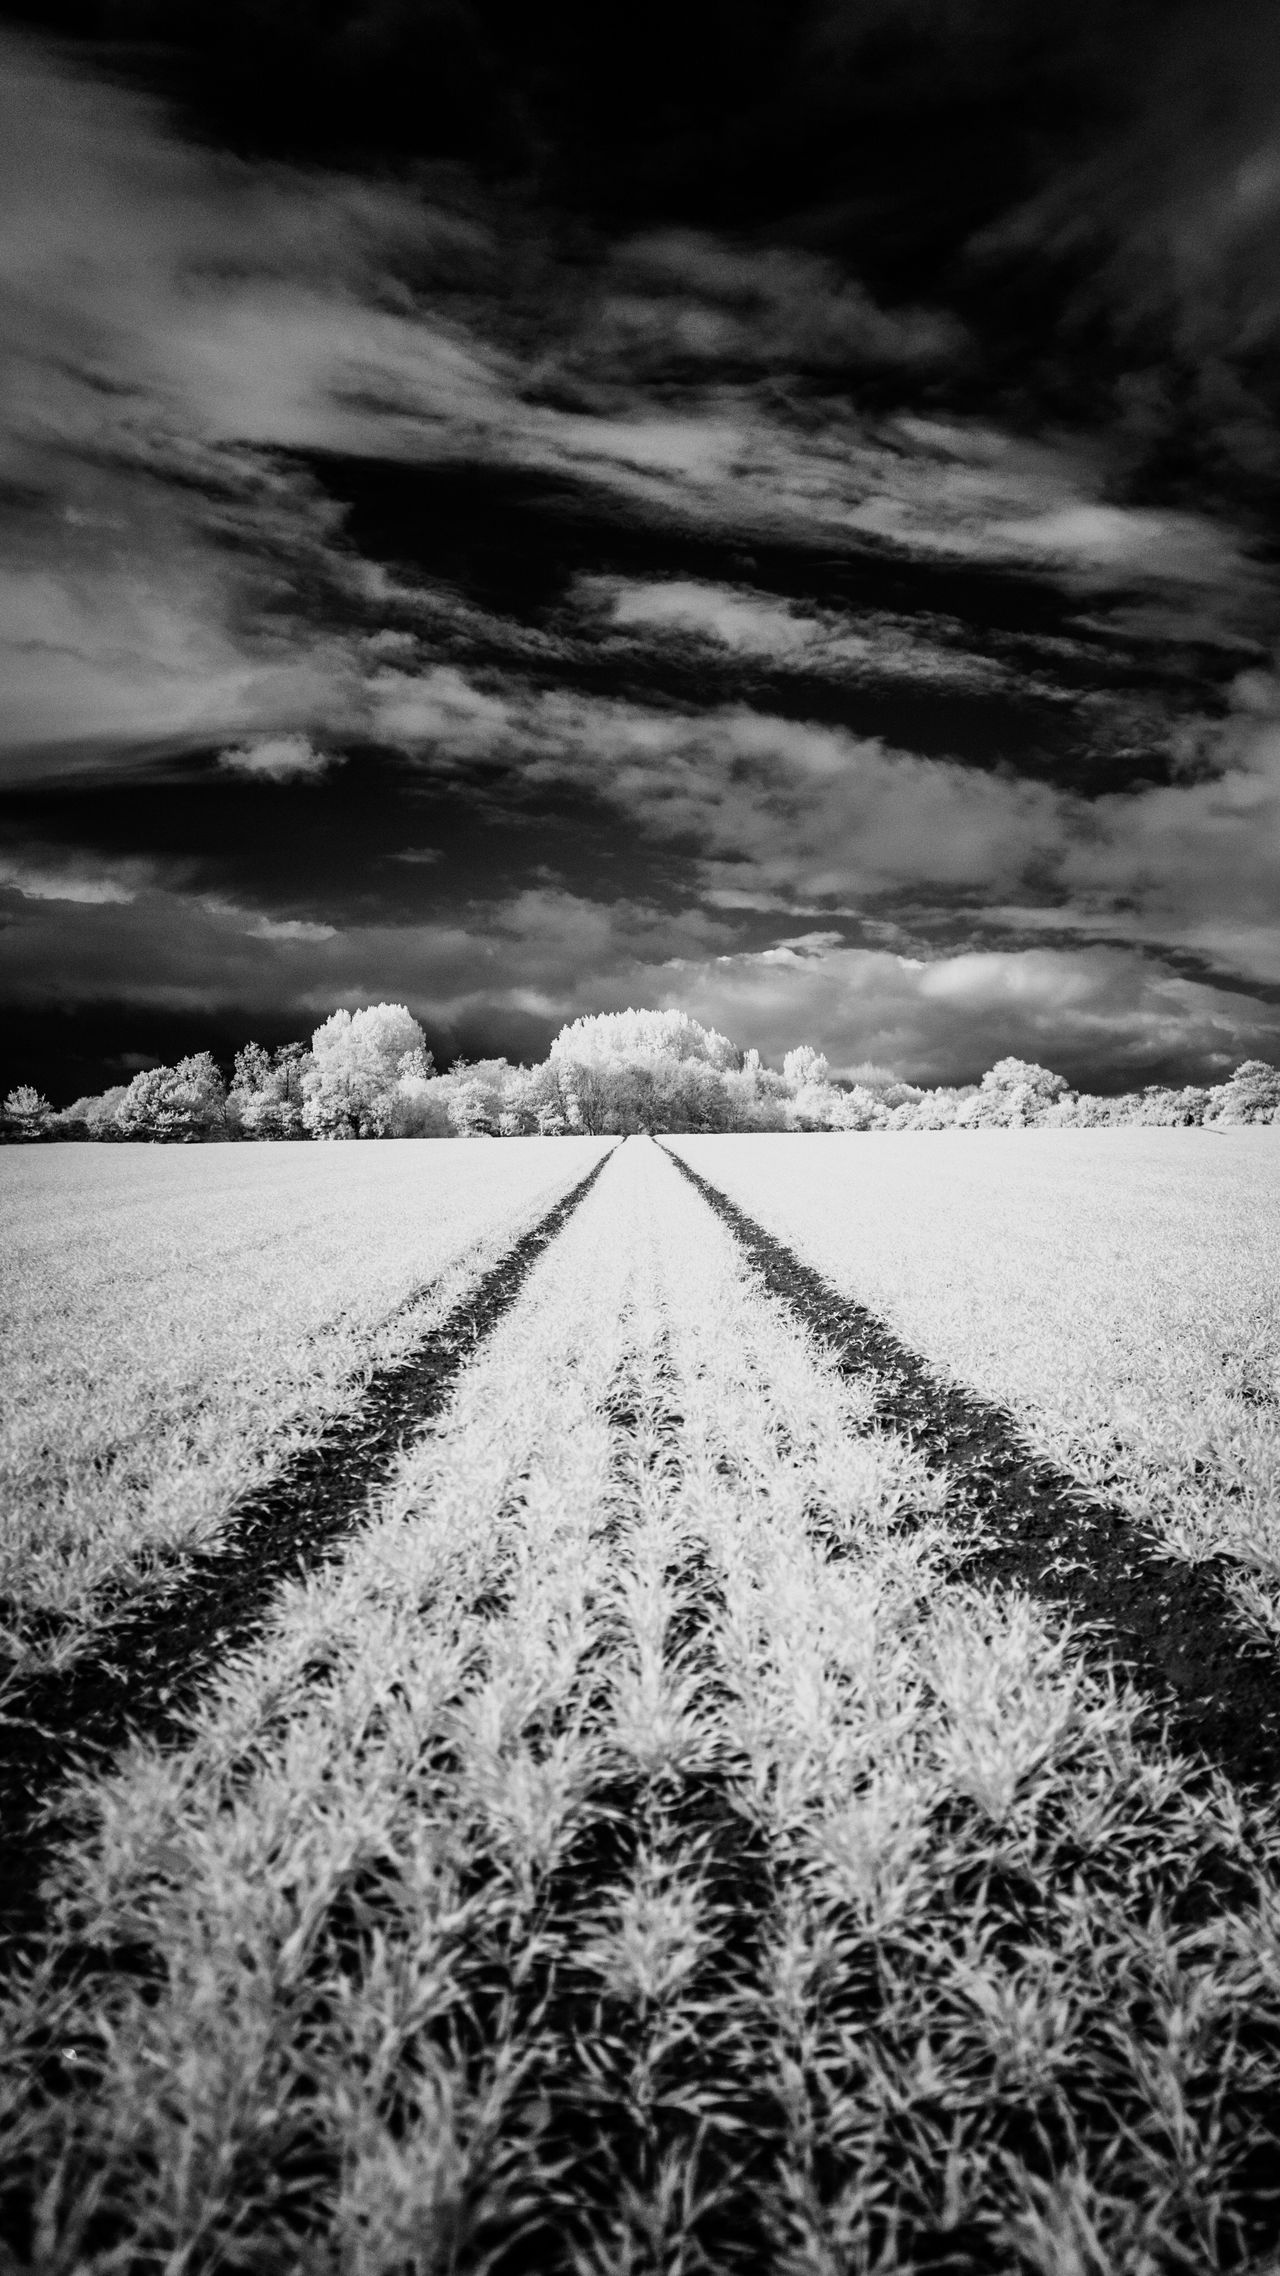 Field Landscape Nature Sky Tranquility Diminishing Perspective Agriculture Tranquil Scene Beauty In Nature Outdoors The Way Forward Weather No People Cloud - Sky Day Rural Scene Growth Scenics Grass Tree Infrared